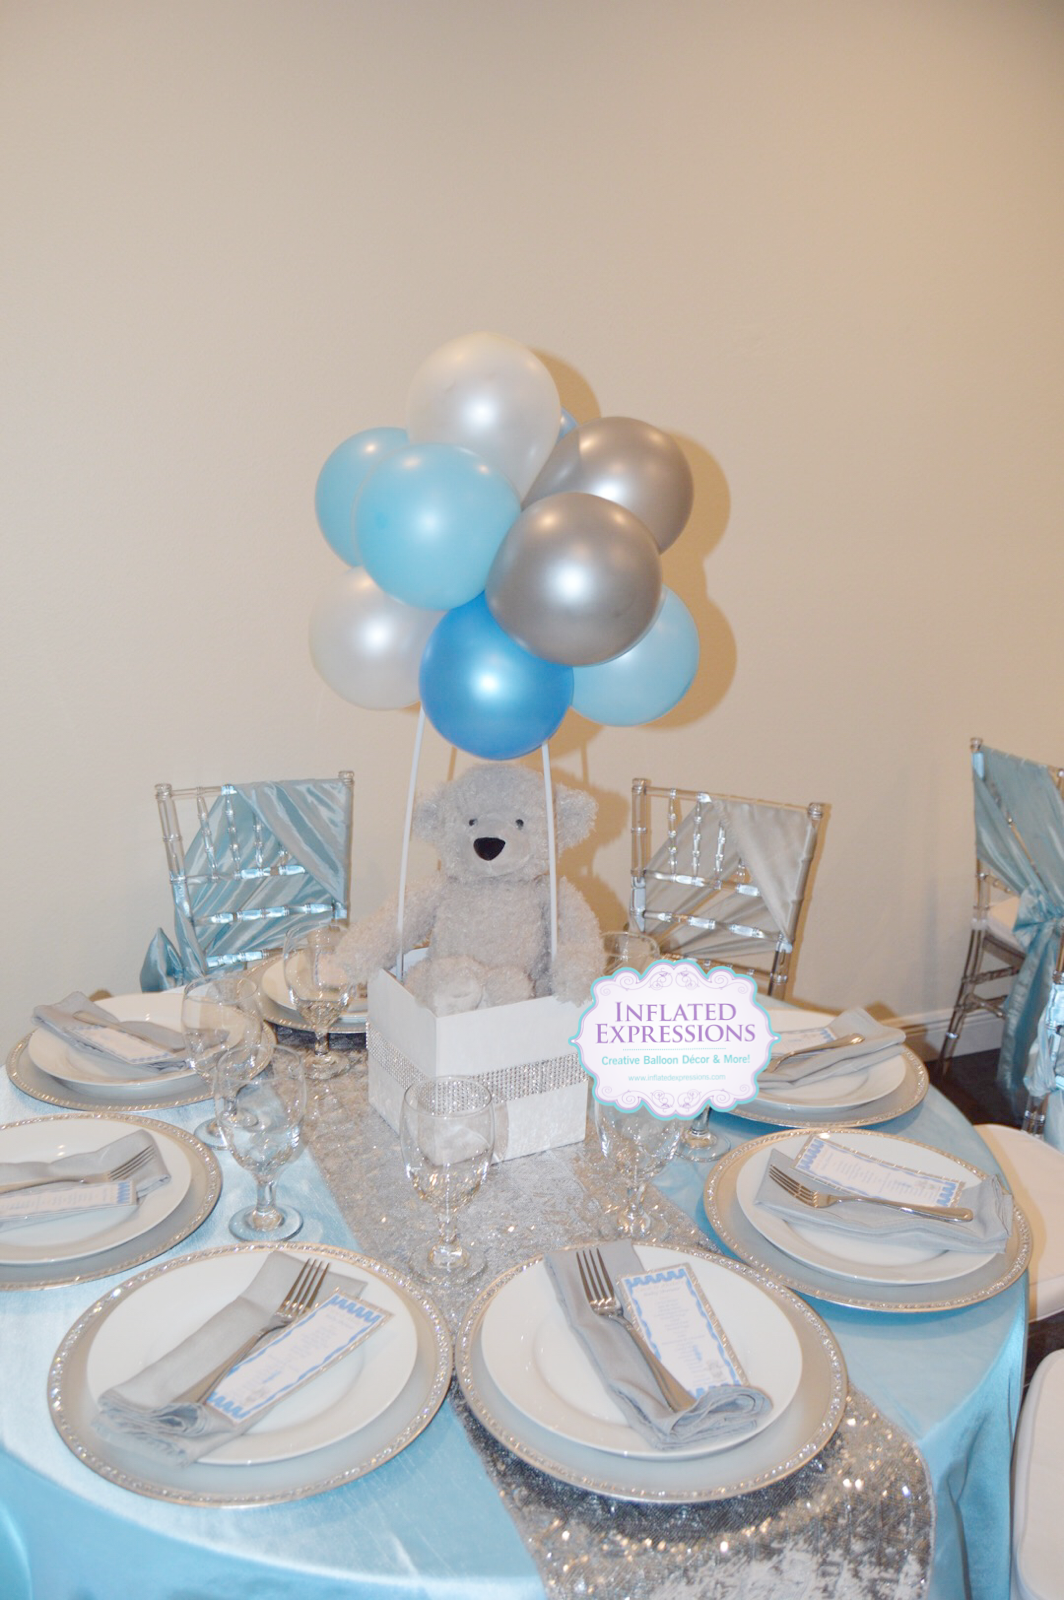 Teddy Bear Topiary Ball Balloon Centerpiece Inflated Expressions